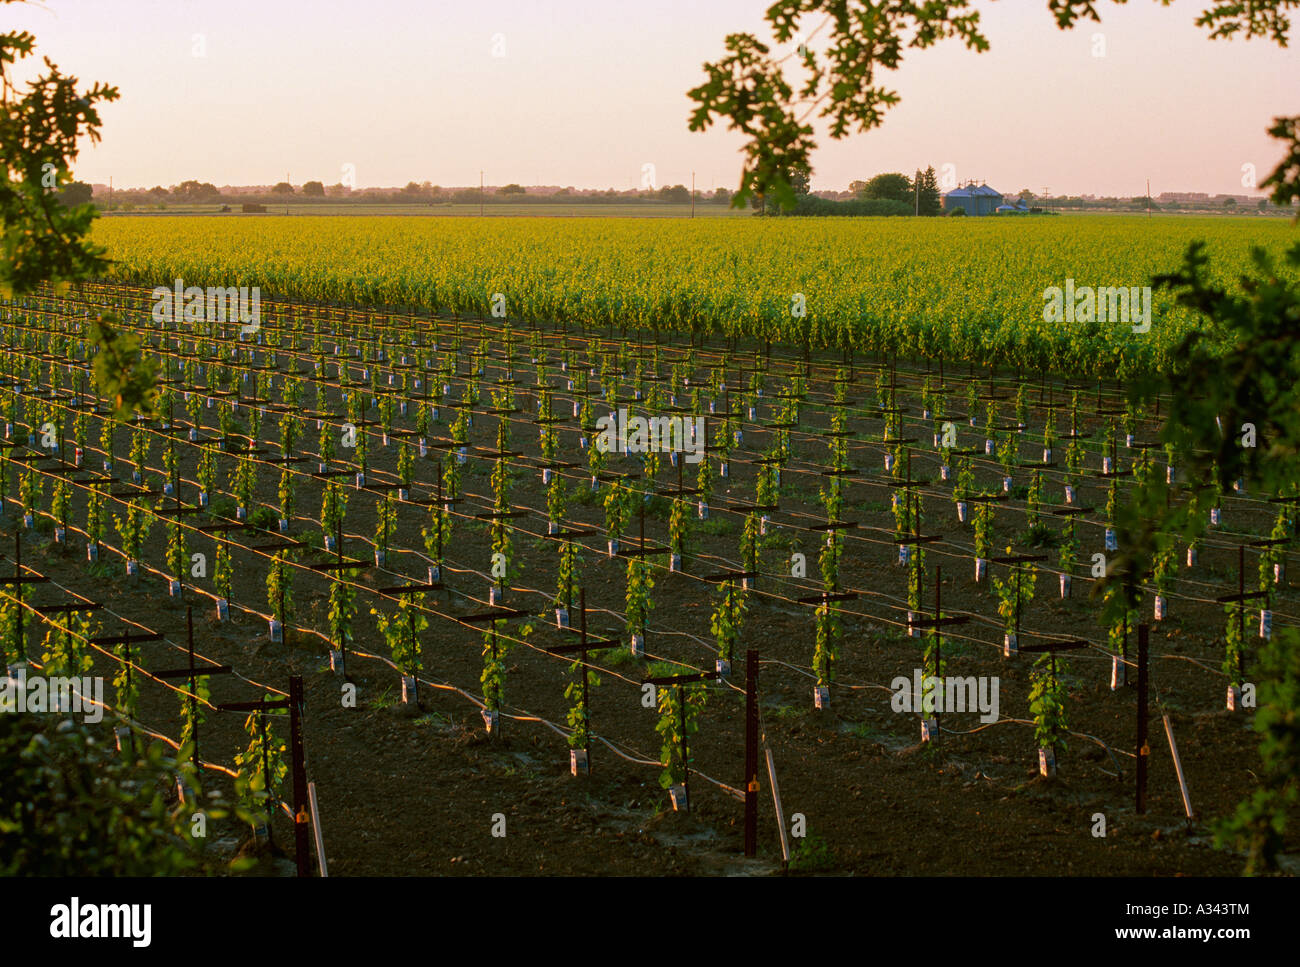 Vines In The Sun Stockfotos & Vines In The Sun Bilder - Seite 2 - Alamy